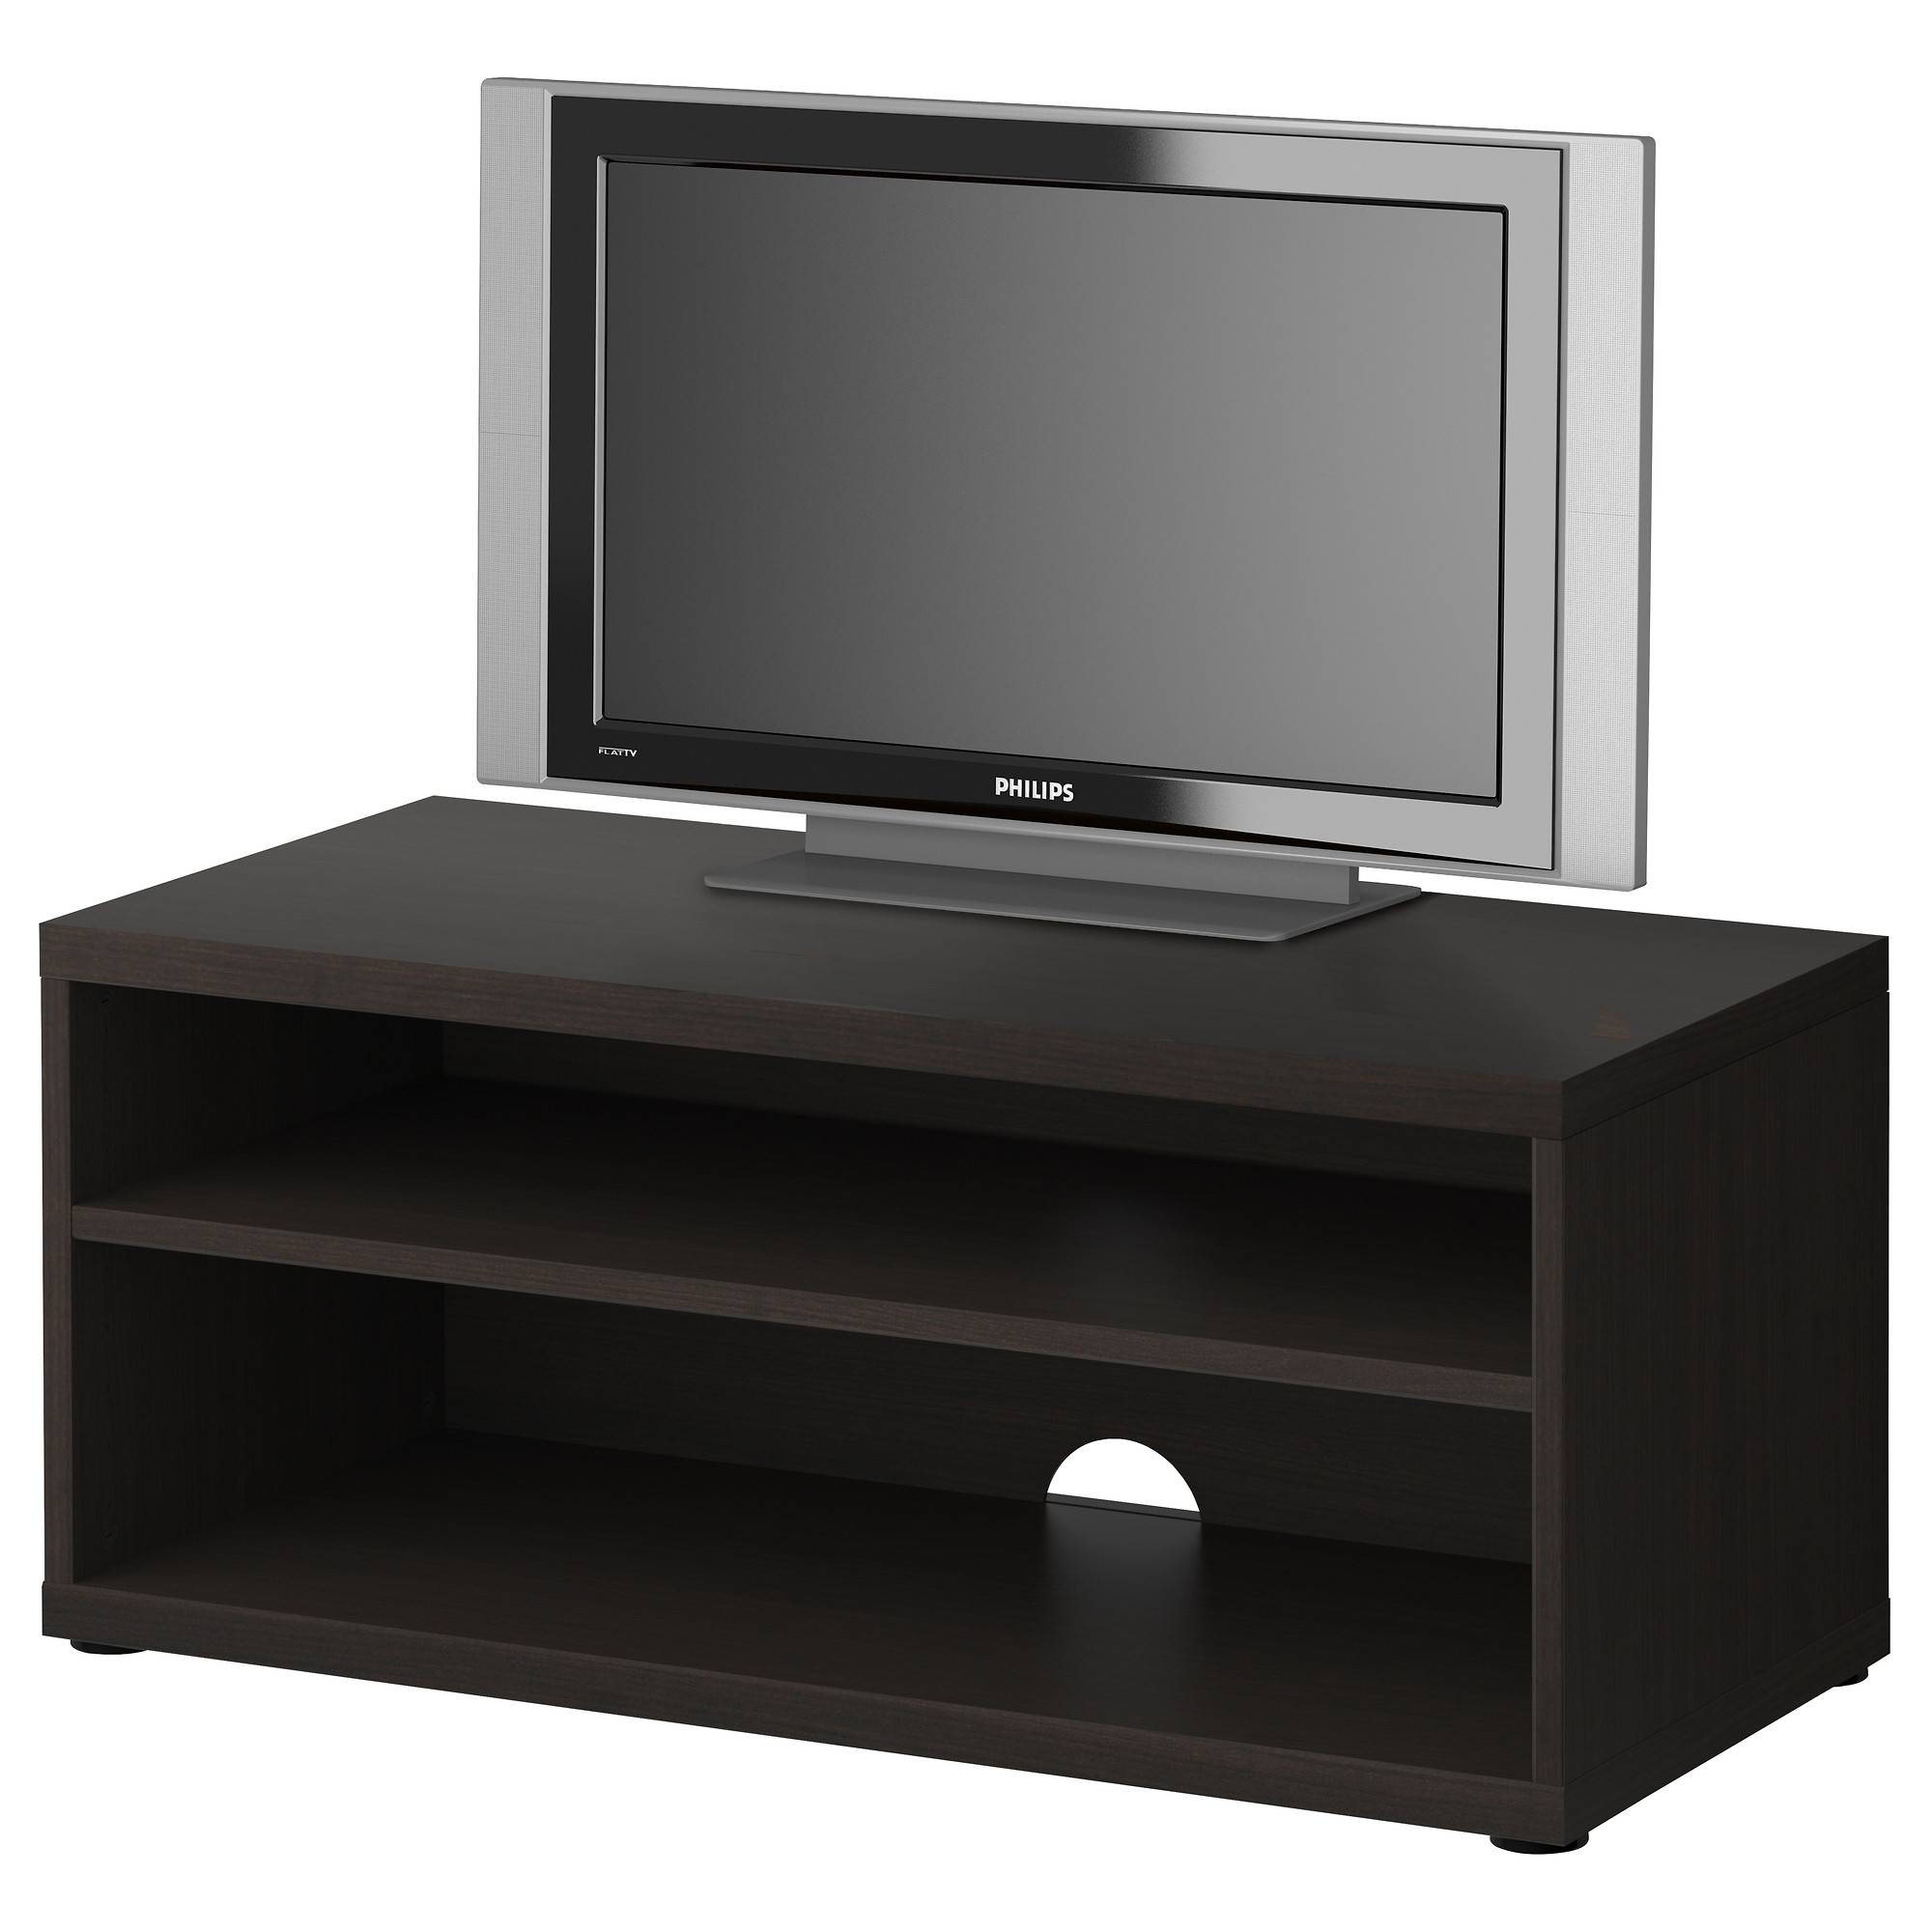 Tv Media Furniture – Tv Stands, Cabinets & Media Storage - Ikea with Dark Brown Corner Tv Stands (Image 12 of 15)